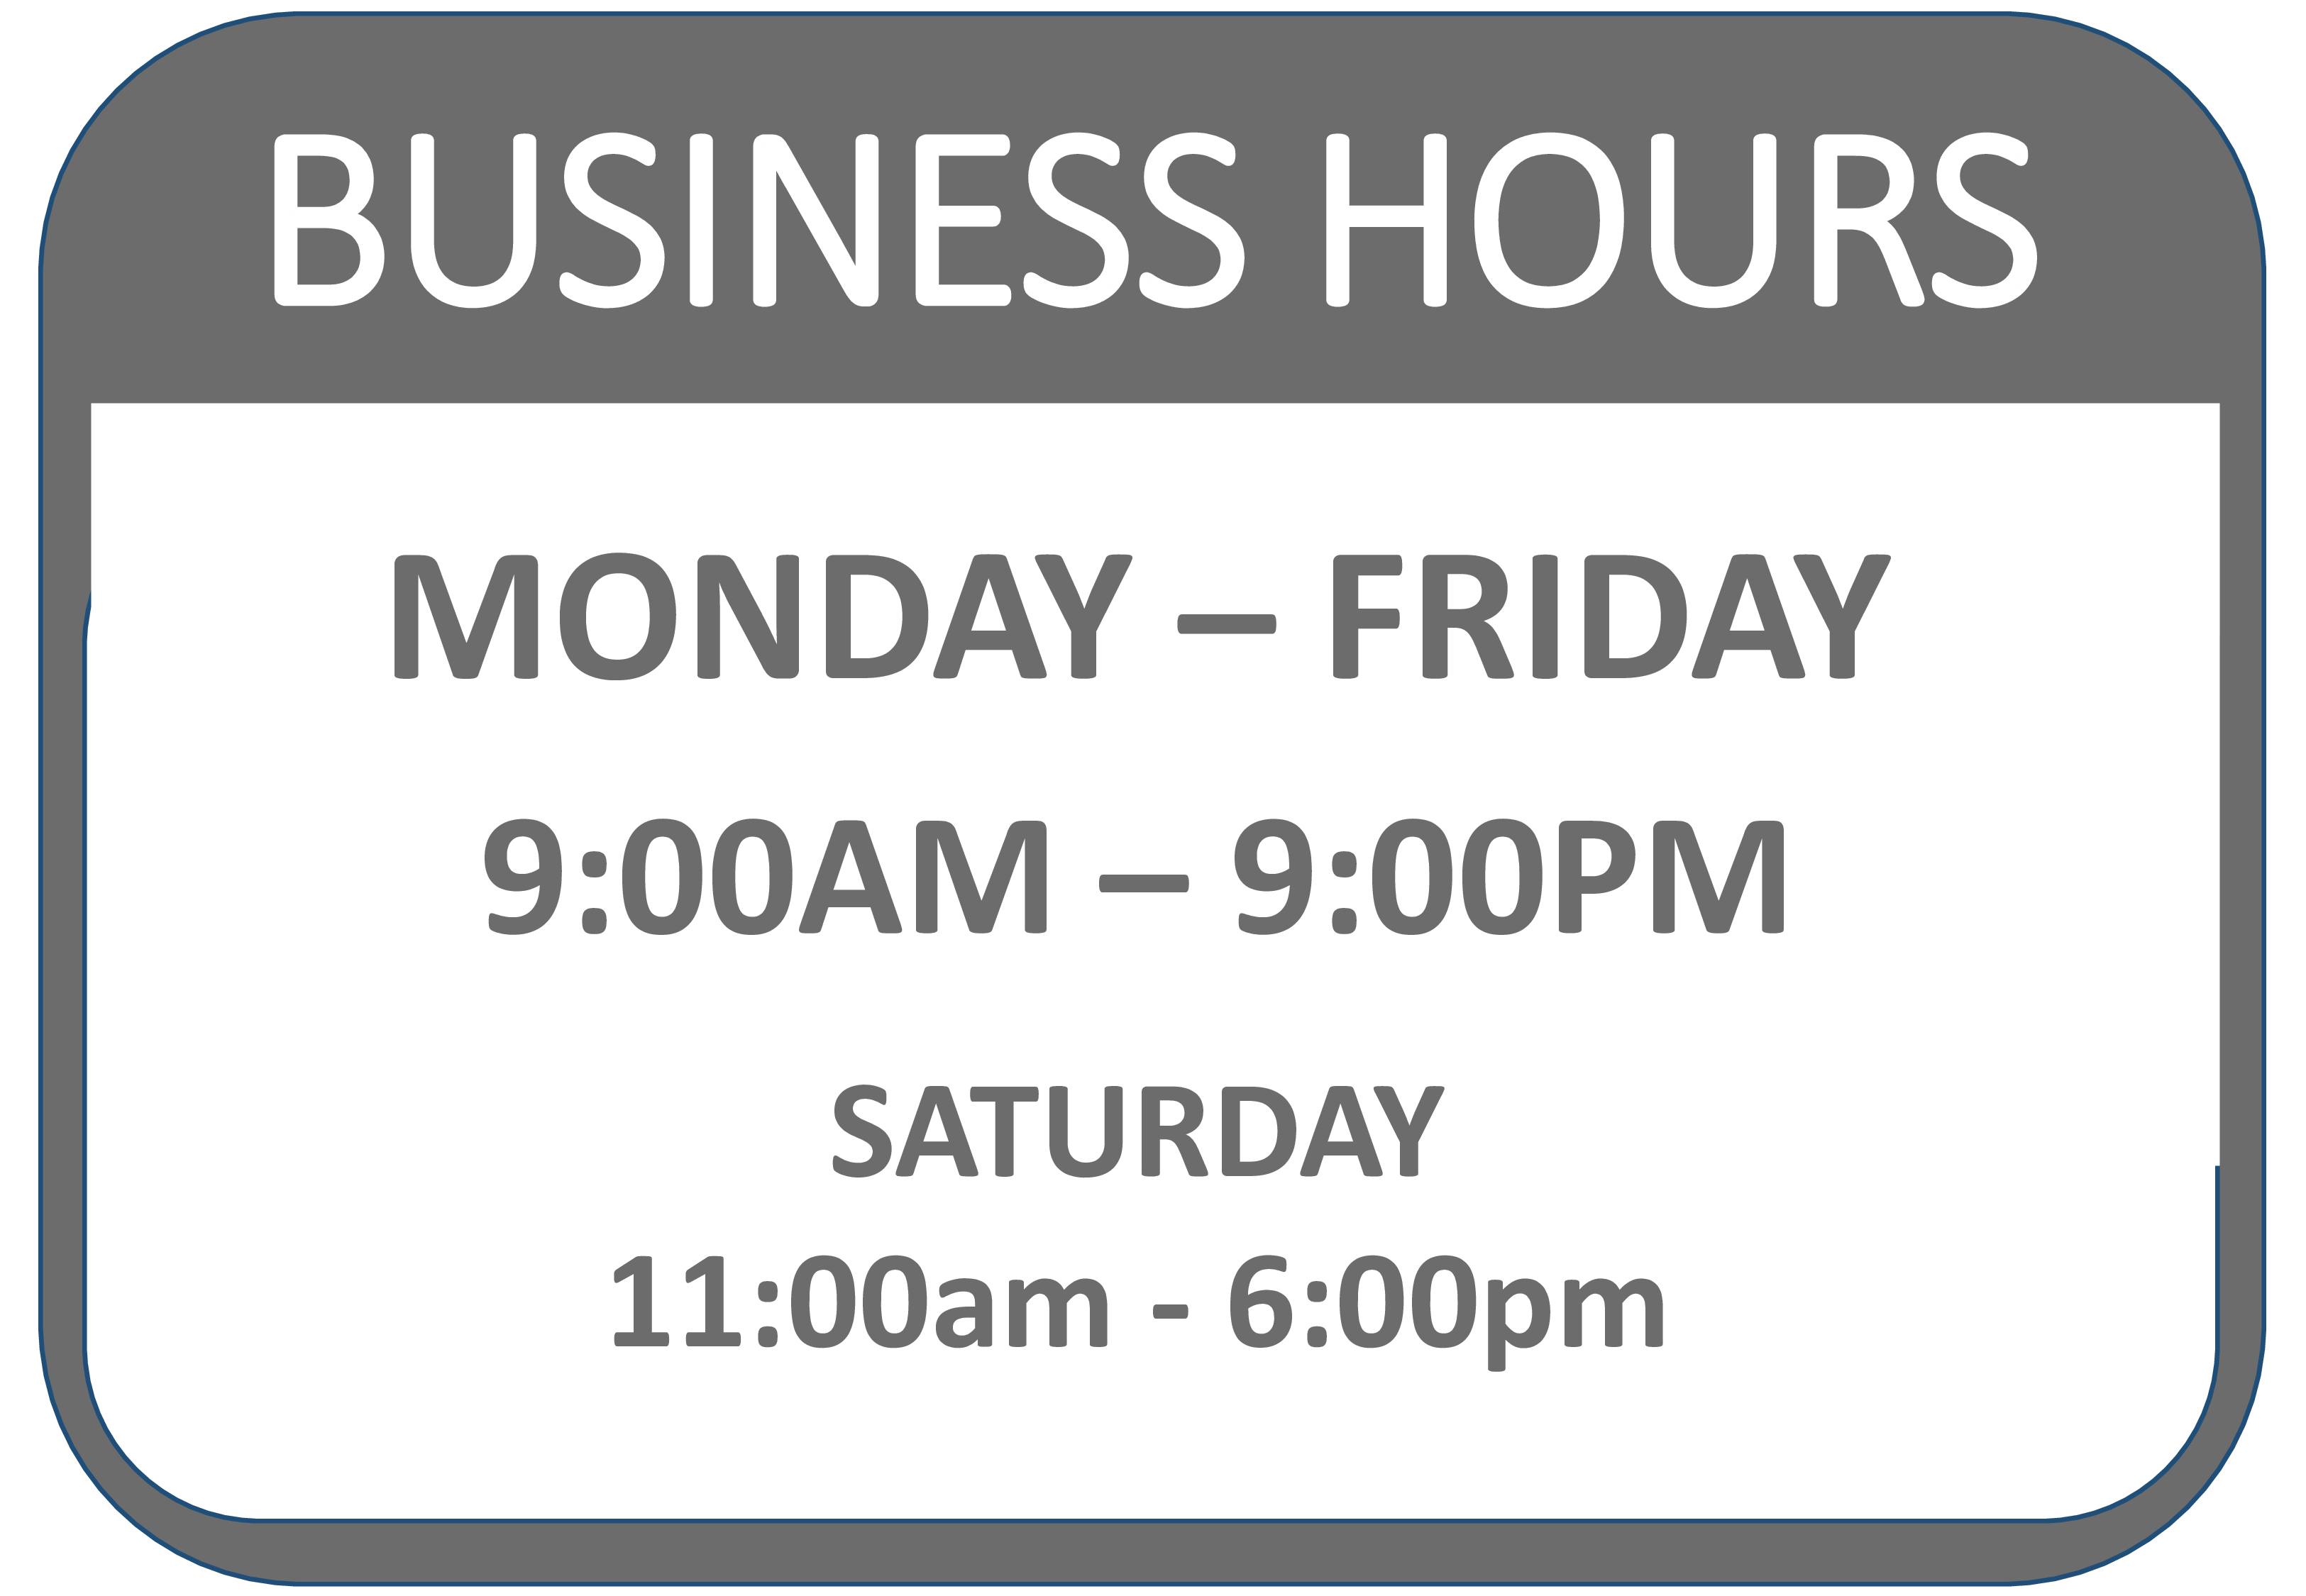 Business hours template word goseqh invoice templates printable free invoice templates free word business hours friedricerecipe Choice Image